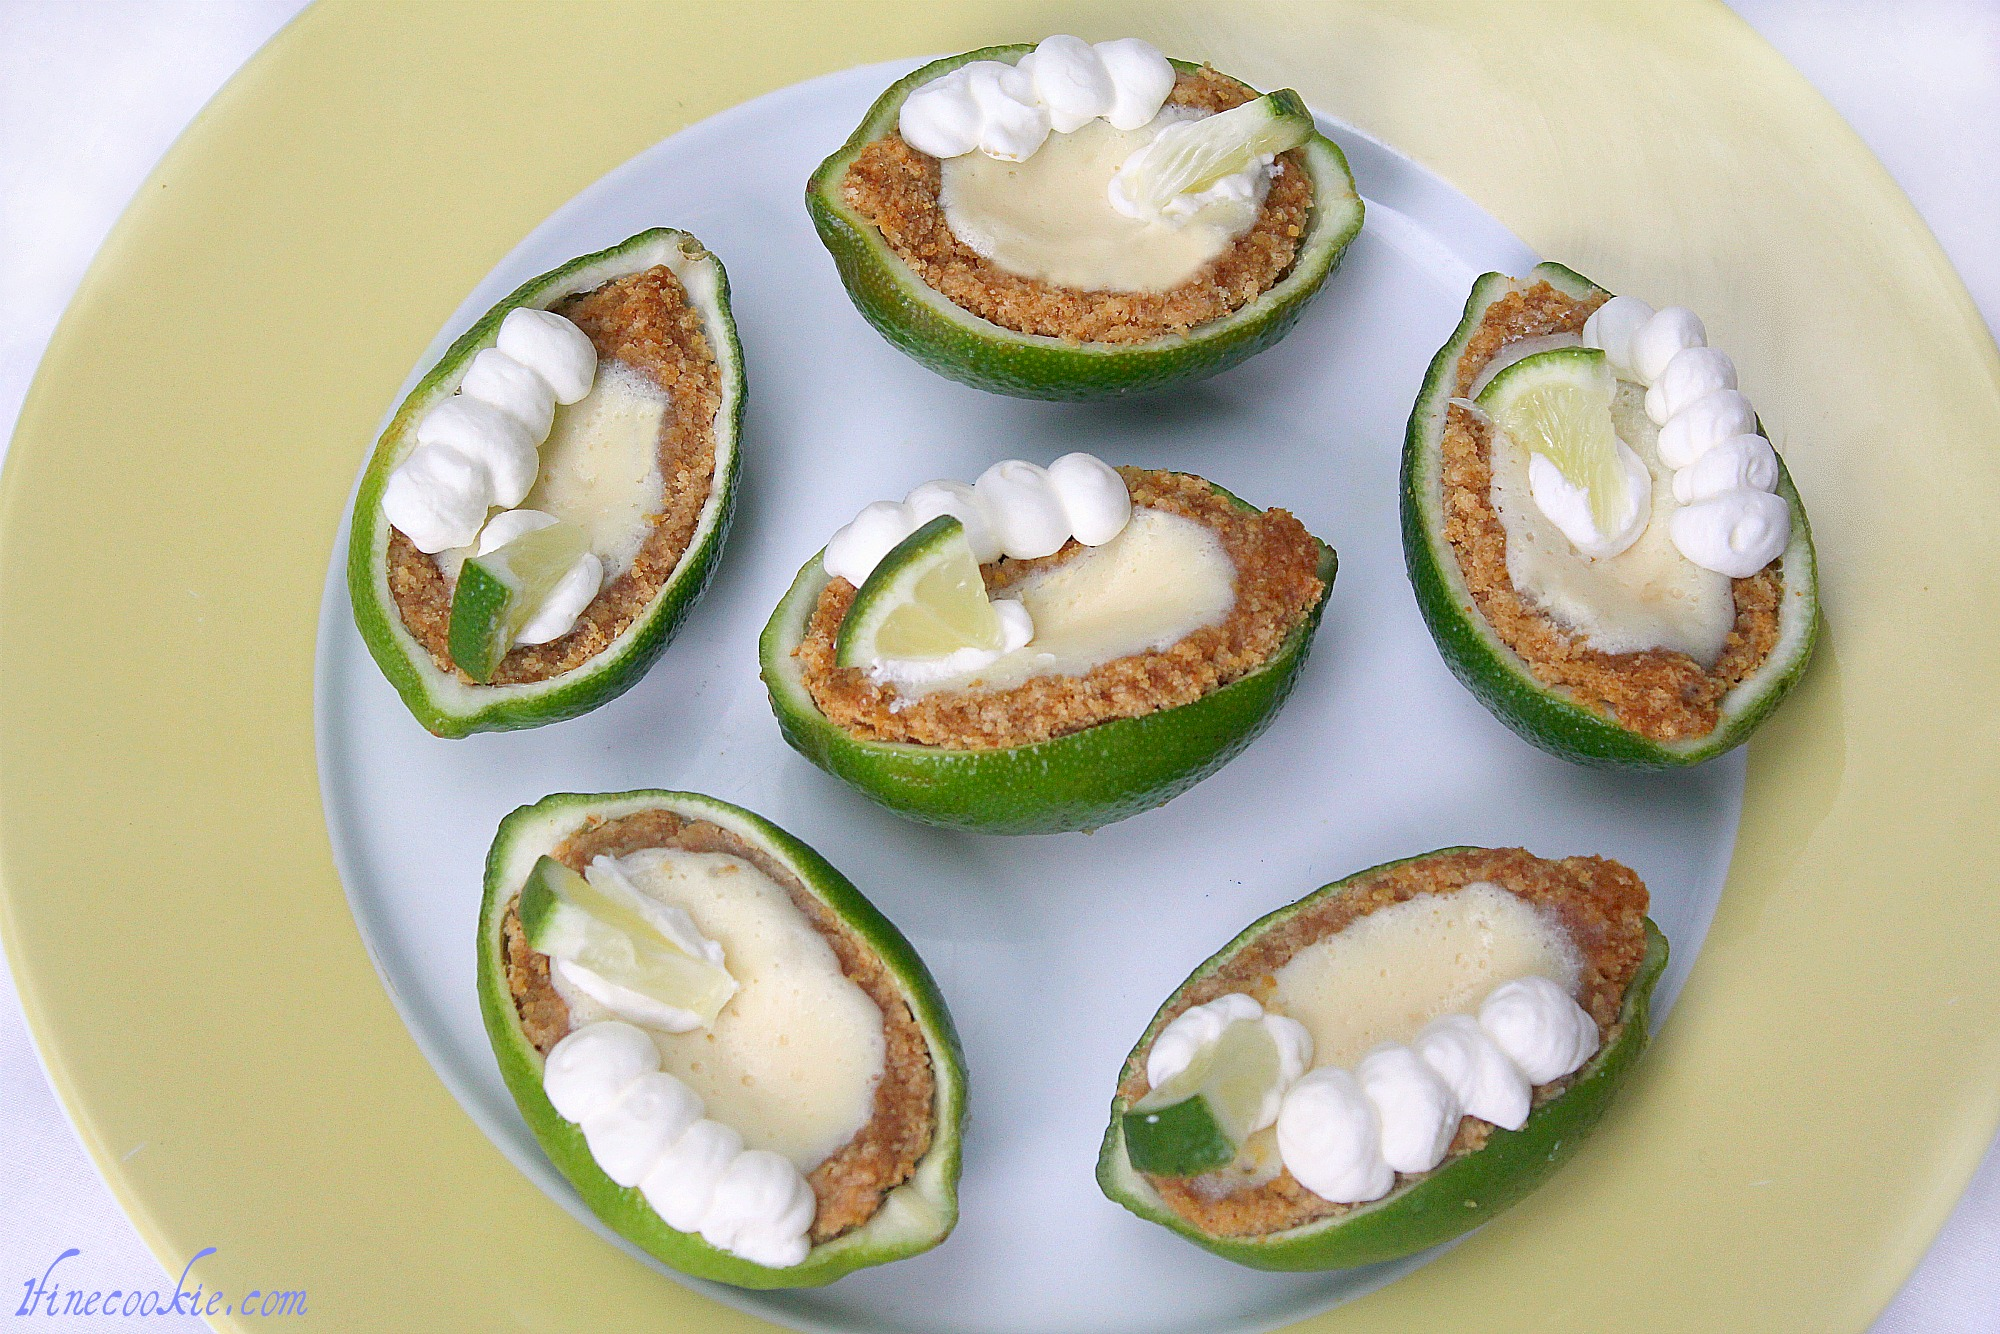 Margarita Pies with Salted Graham Crusts, Topped with Alcohol Whipped ...